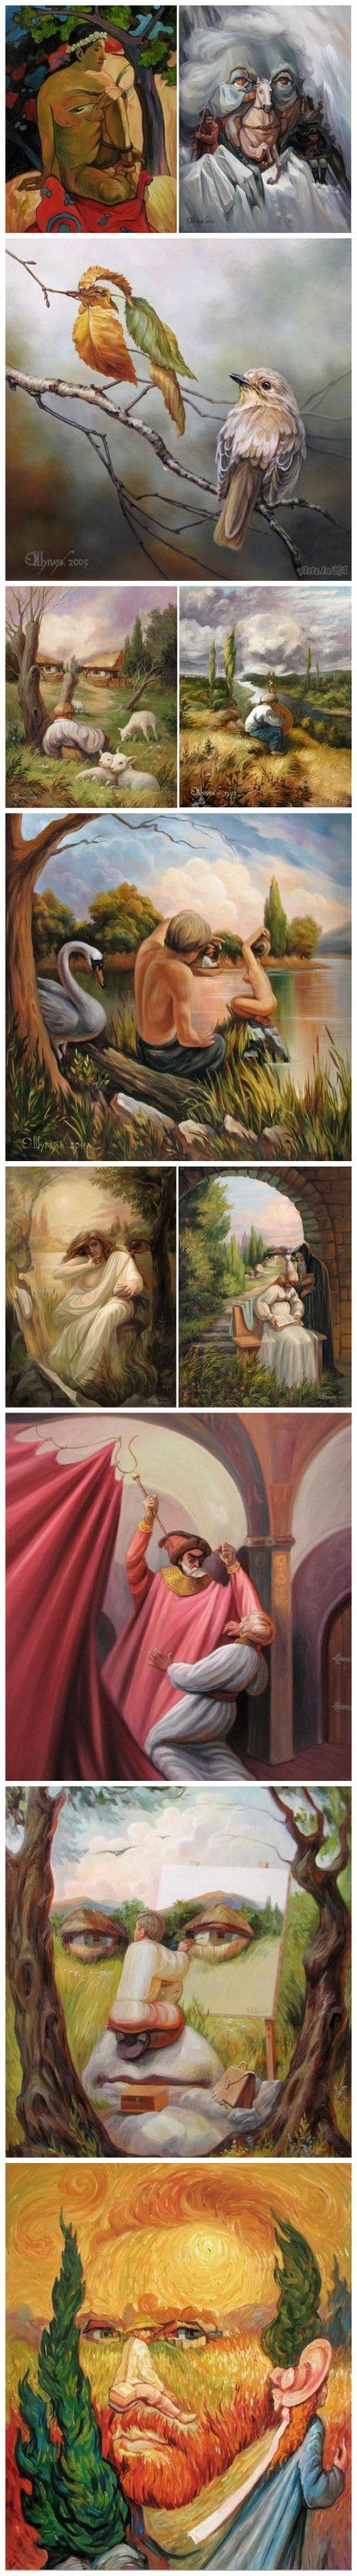 """Picture in Picture, Among the People"" from Ukrainian artist Oleg Shuplyak/ I used to love these 'image within image' works when I was young. :)"